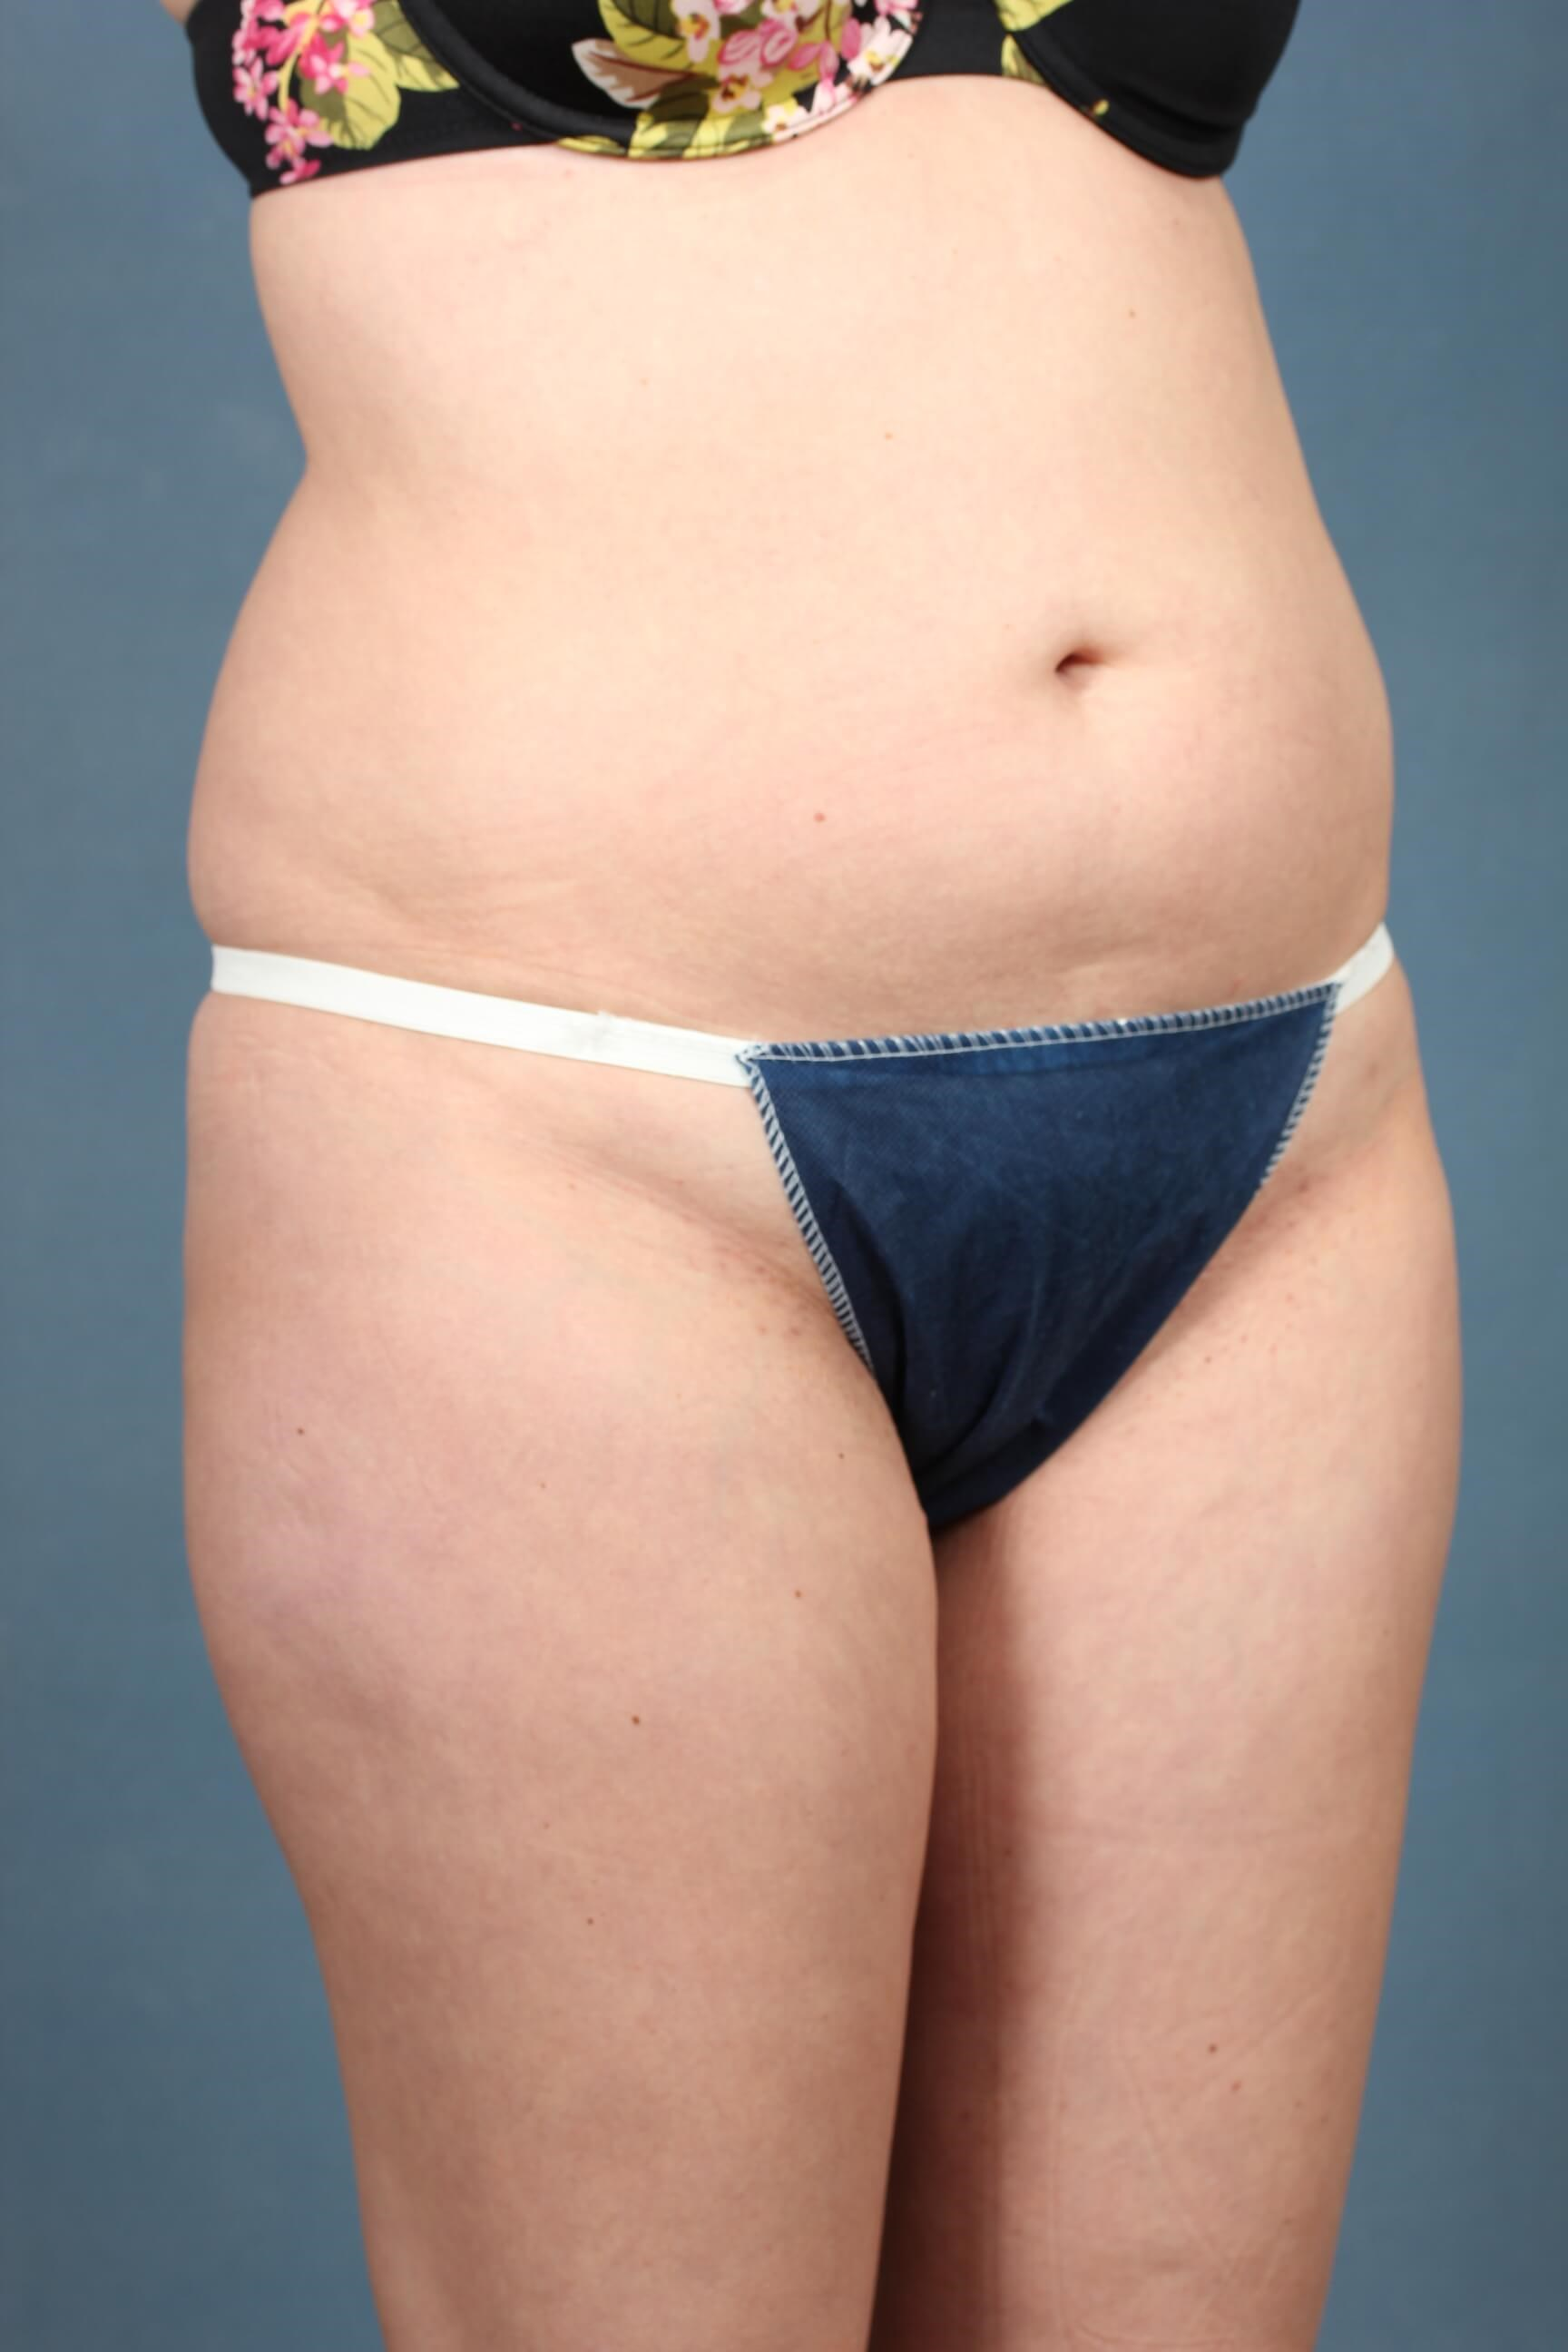 Tummy tuck in Louisville,KY Before